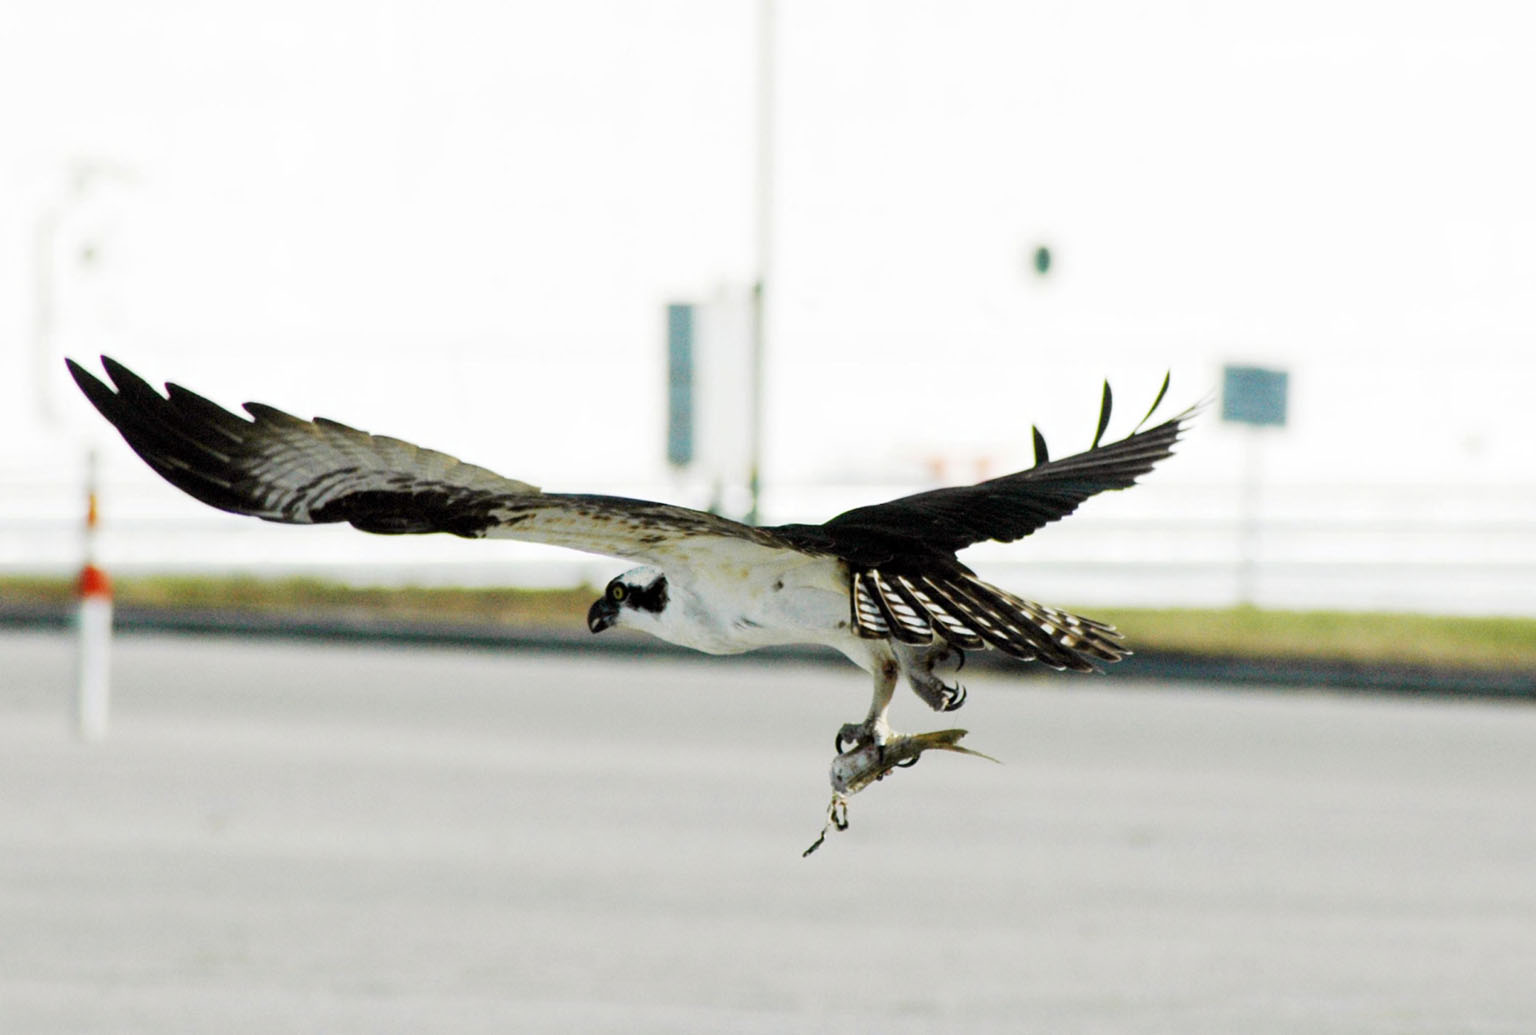 KENNEDY SPACE CENTER, FLA. -- Near the Kennedy Space Center News Center, in the Launch Complex 39 area, a male Osprey takes flight with part of a fish clutched in its talons. The bird is one of more than 500 species of birds that co-exist at the Center and the Merritt Island National Wildlife Refuge. Photo credit: NASA/Ken Thornsley